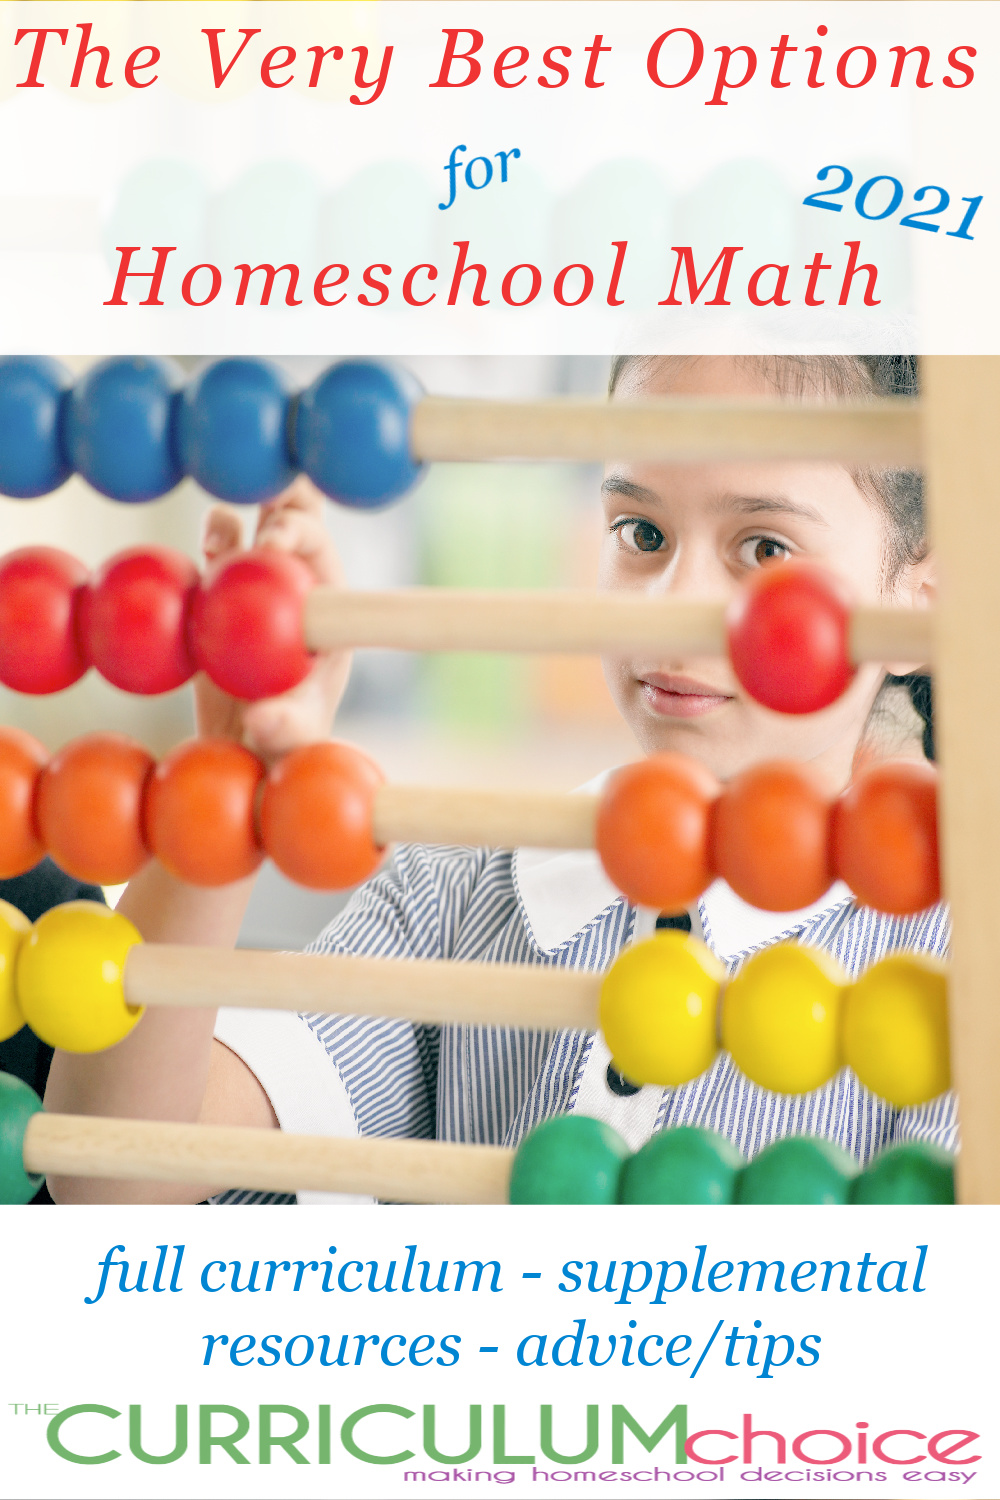 The Very Best Options for Homeschool Math (2021) includes full curriculum options, supplements, and even math advice from seasoned homeschool parents!